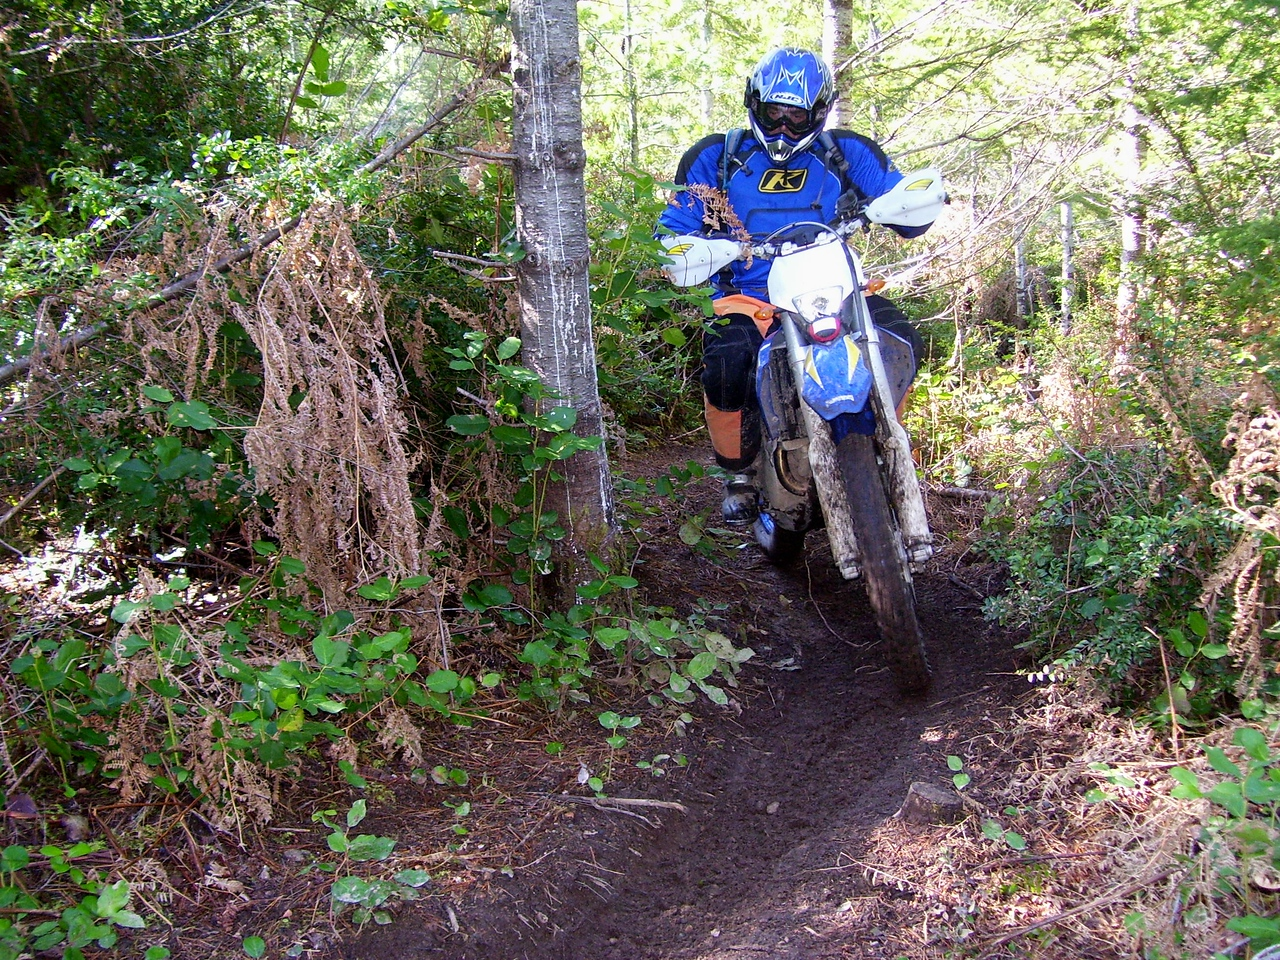 Gabriele got his wish to ride the Chernobyl Trail